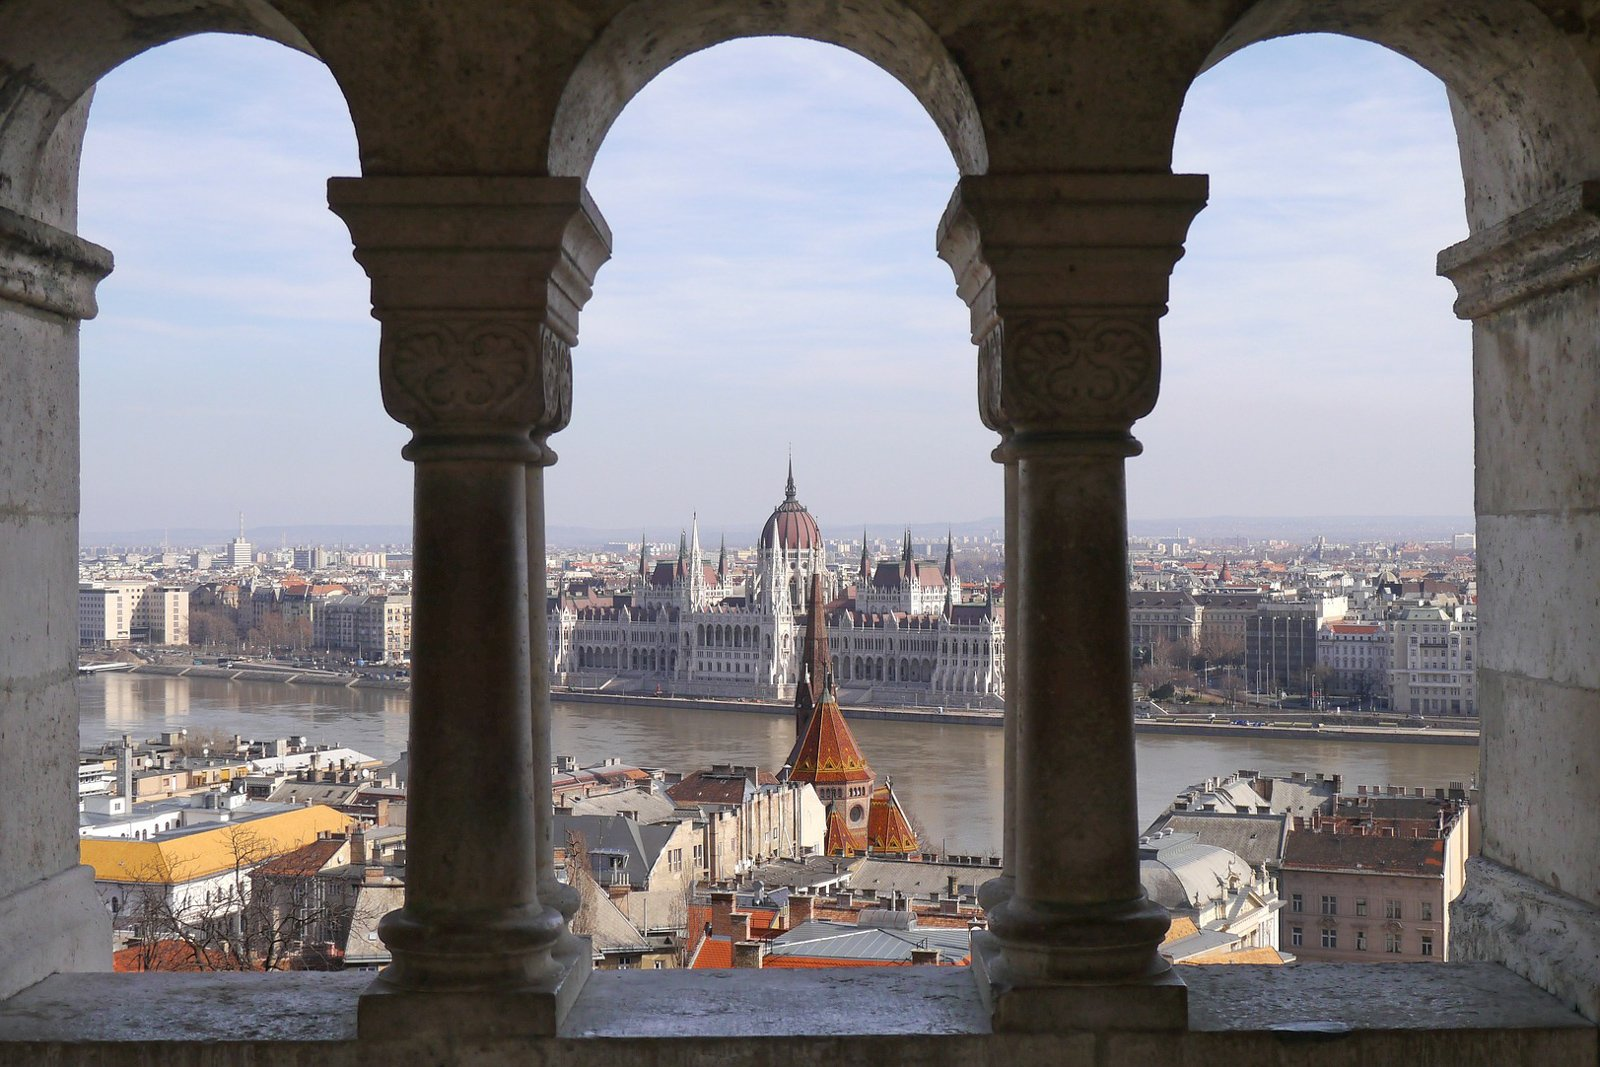 What to do in budapest in the city of hungary budapest if you have one day in budapest